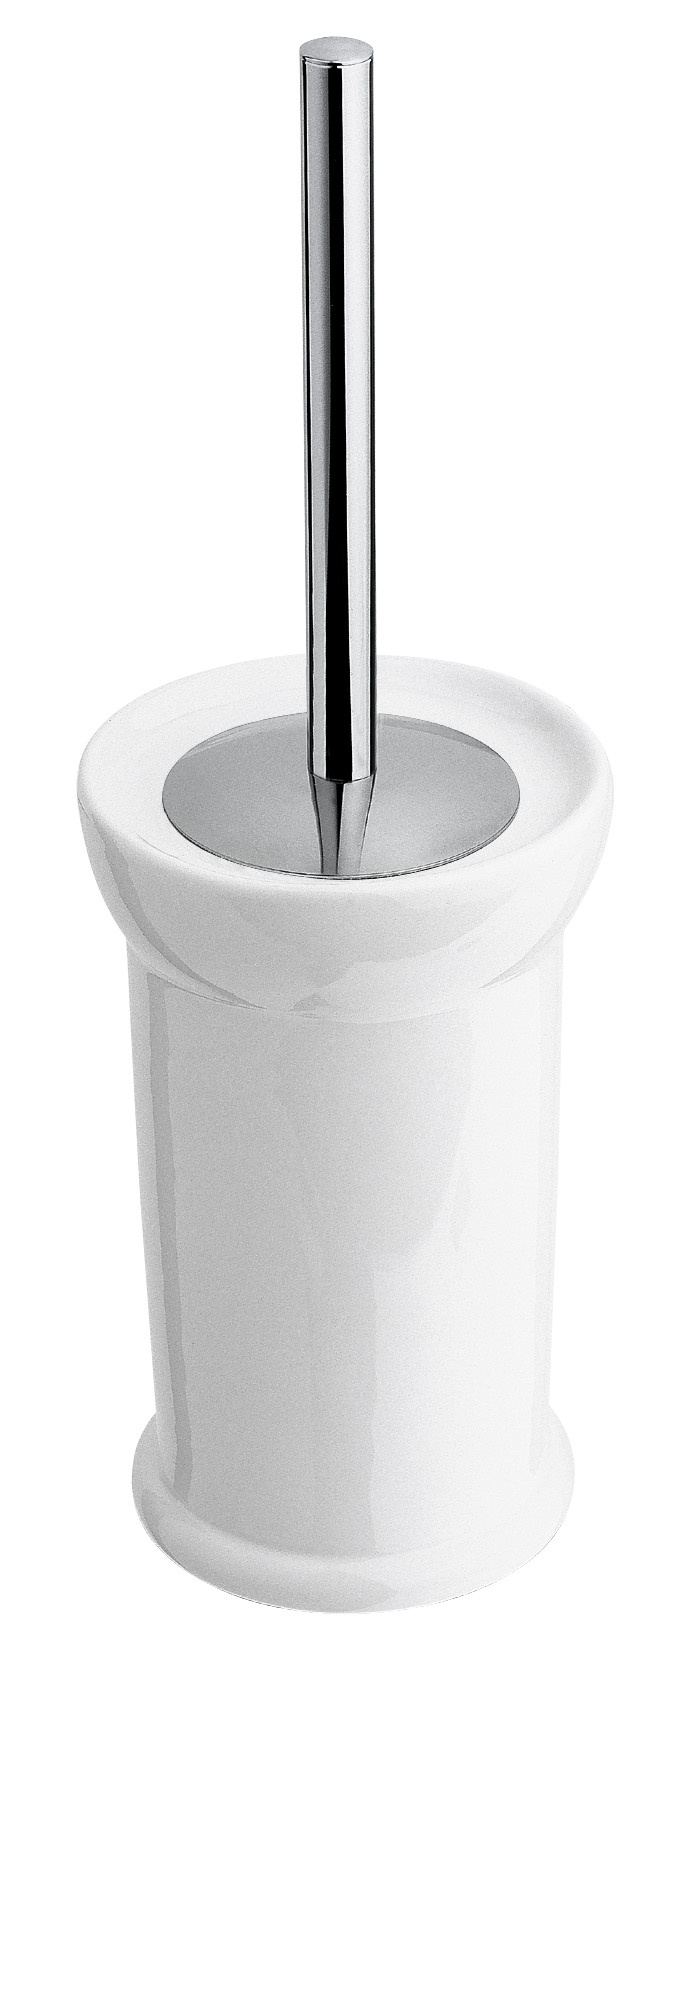 1491 - Ceramic Toilet Brush Container & Brush with cover, BAGNO www.sinkandtap.com.au